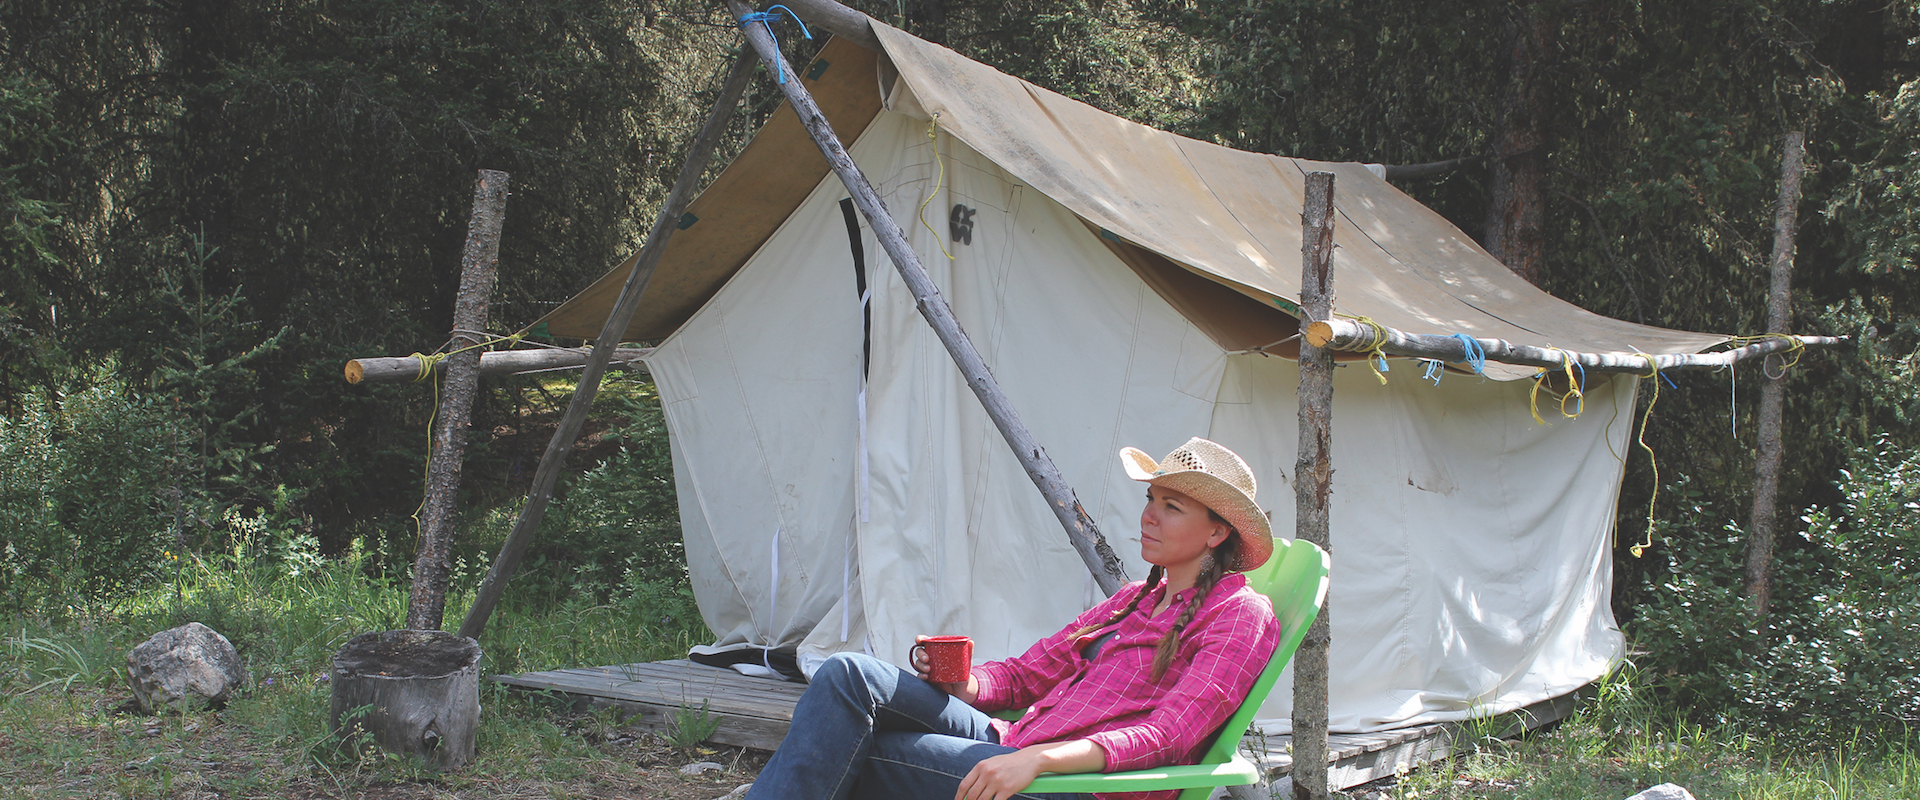 Backcountry Tent Trips in Banff, Canadian Rockies with Banff Trail Riders